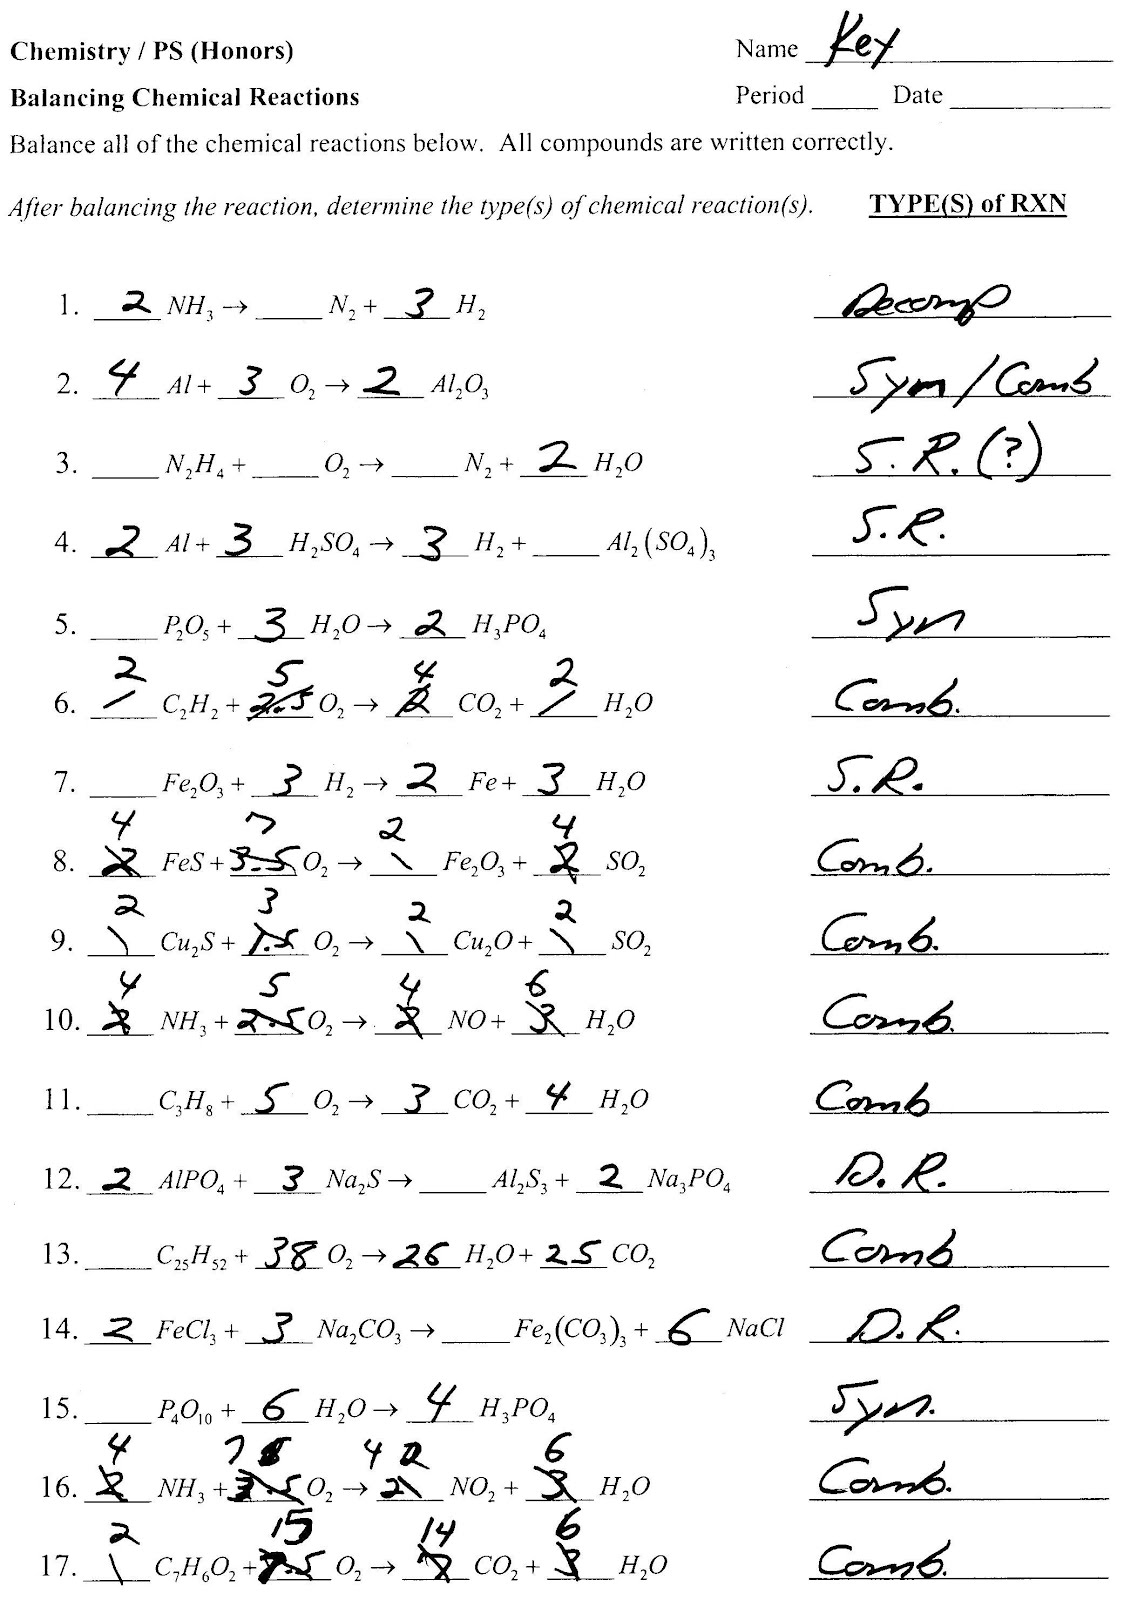 Writing Chemical Equations And Types Of Reactions Worksheet 2 ...